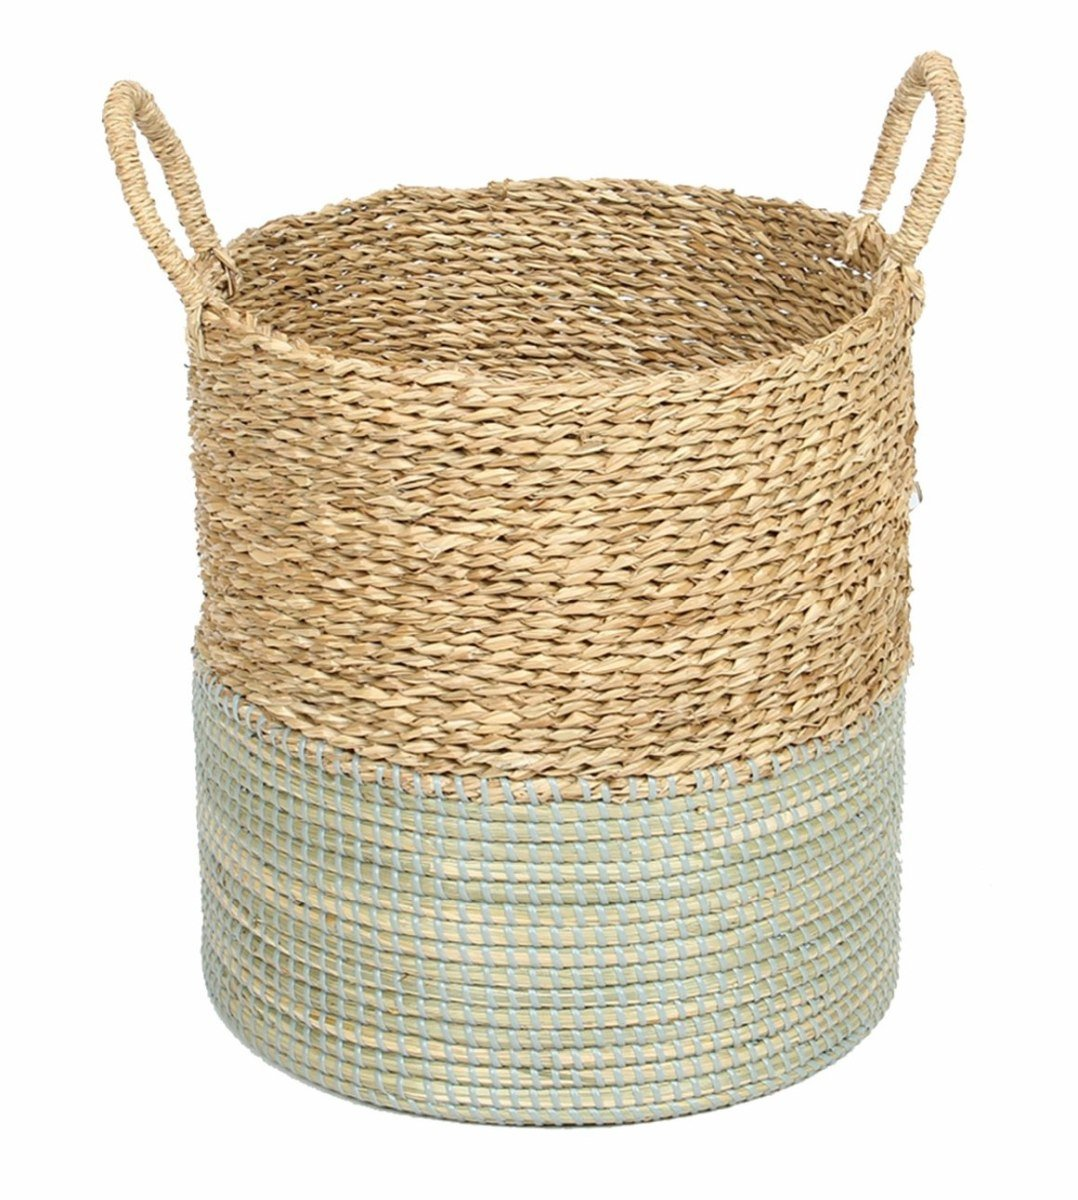 Basket 2Tone Natural And Mystic Blue-fliphome.com.au